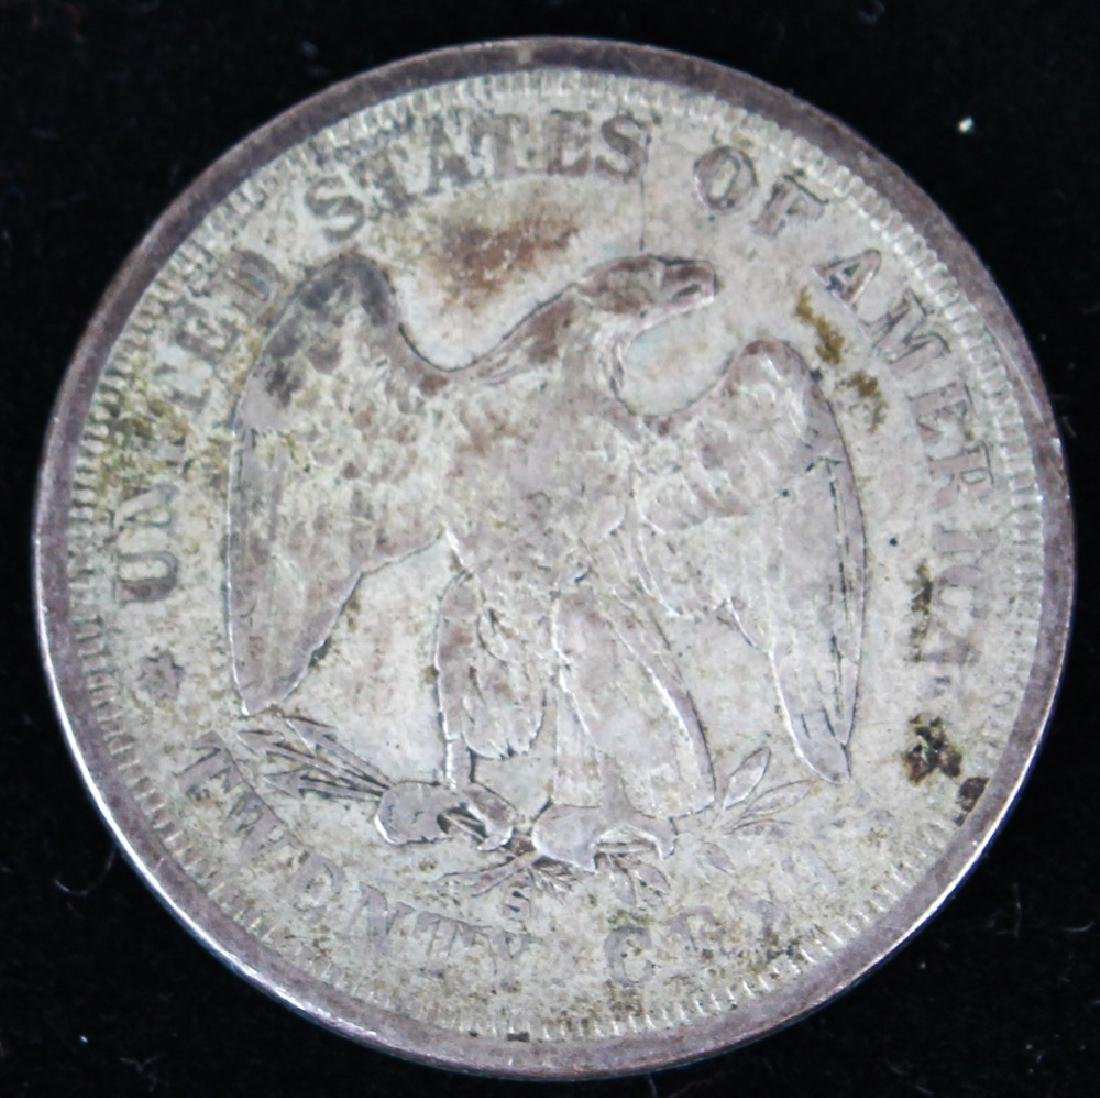 1875 S UNITED STATES SILVER TWENTY CENT PIECE - 2